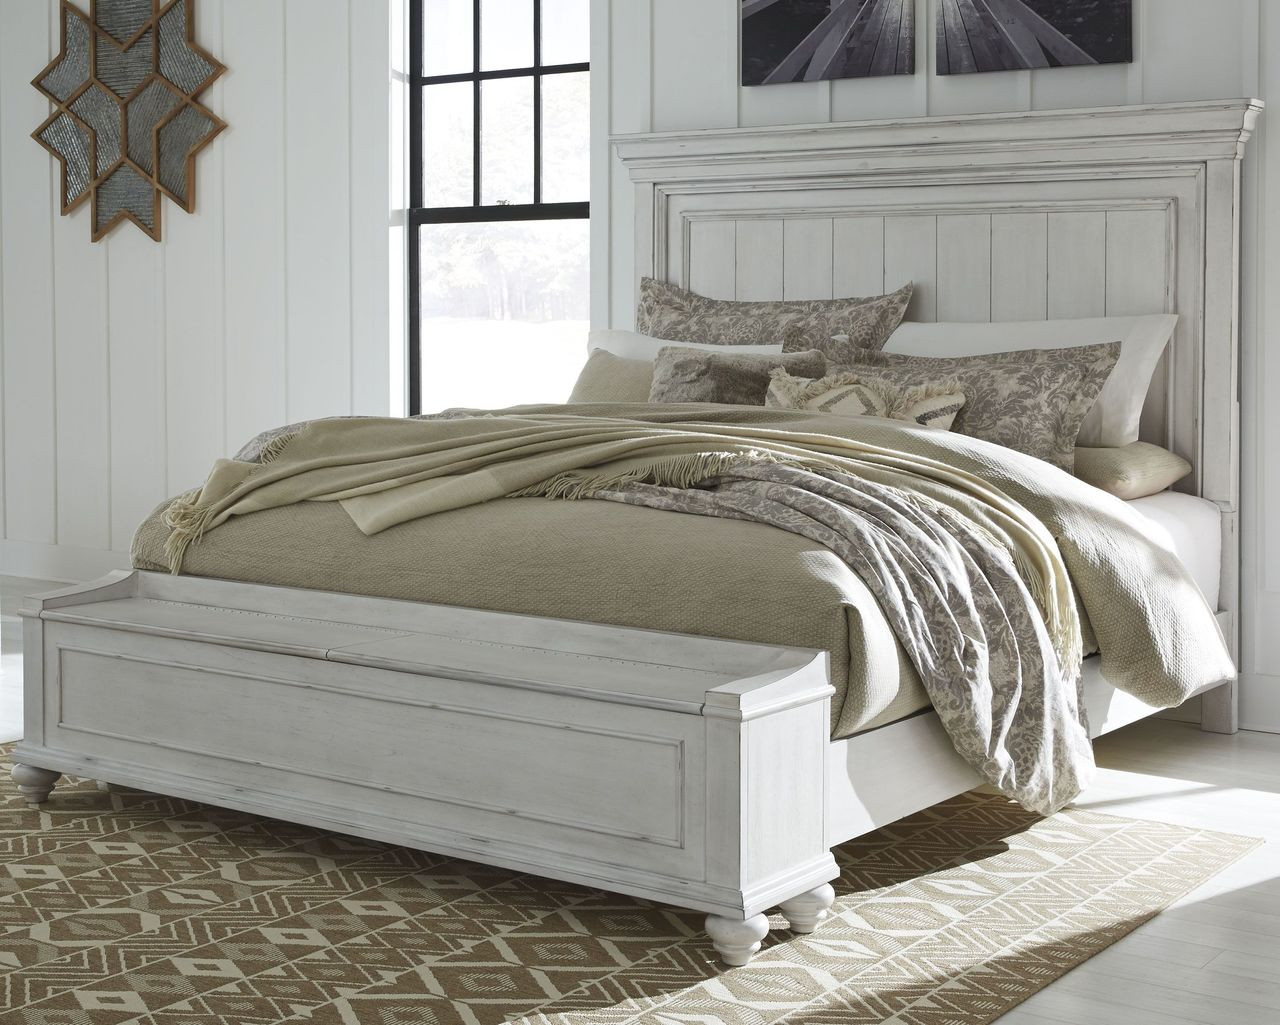 The Kanwyn Whitewash King Panel Upholstered Bed With Storage Sold At Outten Brothers Of Salisbury Serving Salisbury Maryland And Surrounding Areas